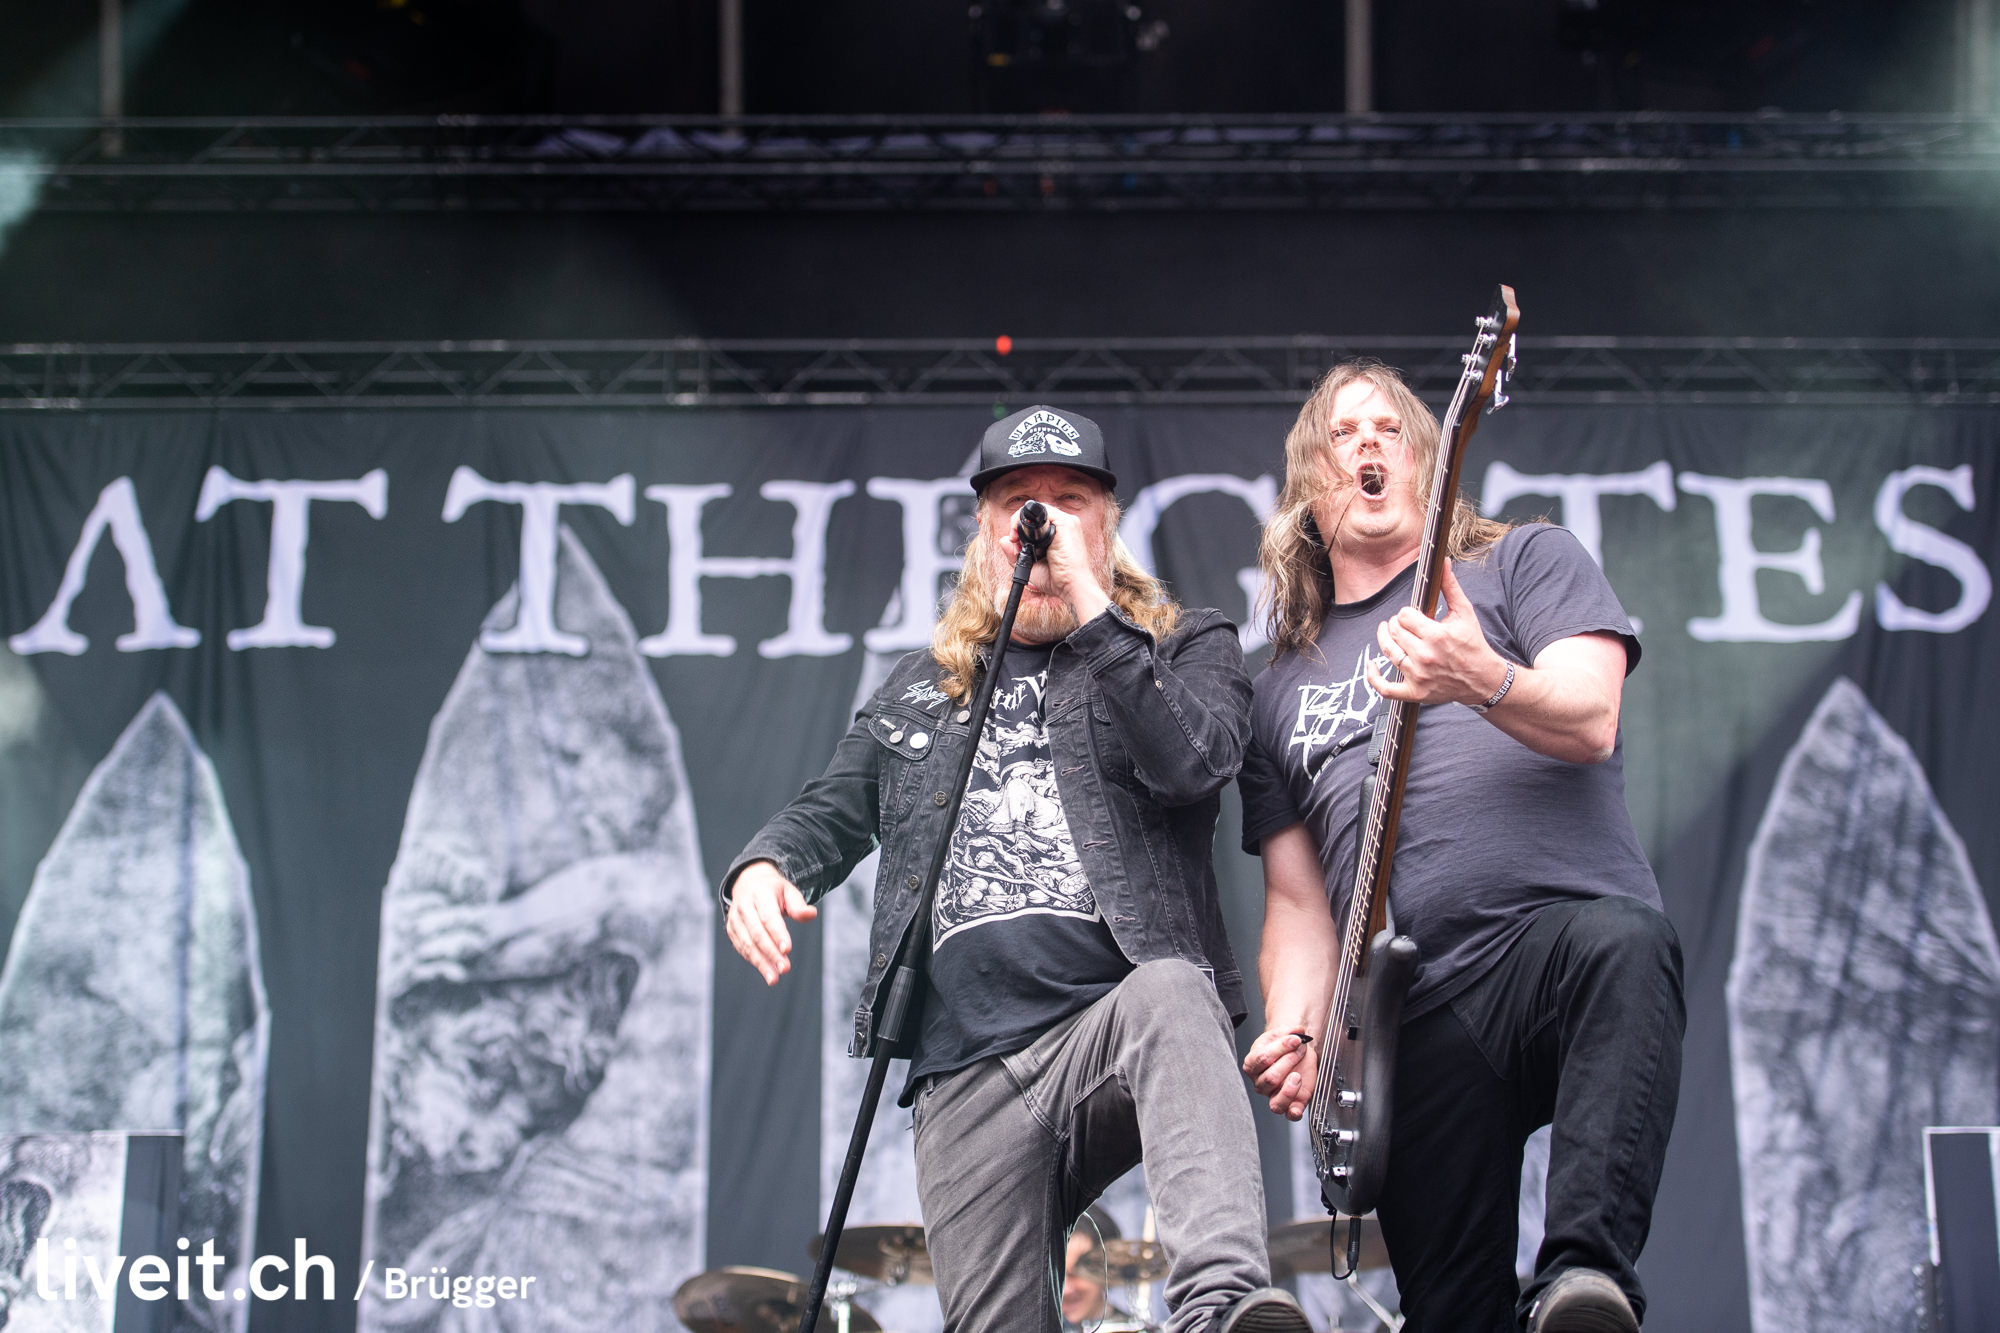 SCHWEIZ GREENFIELD FESTIVAL 2019 At The Gates